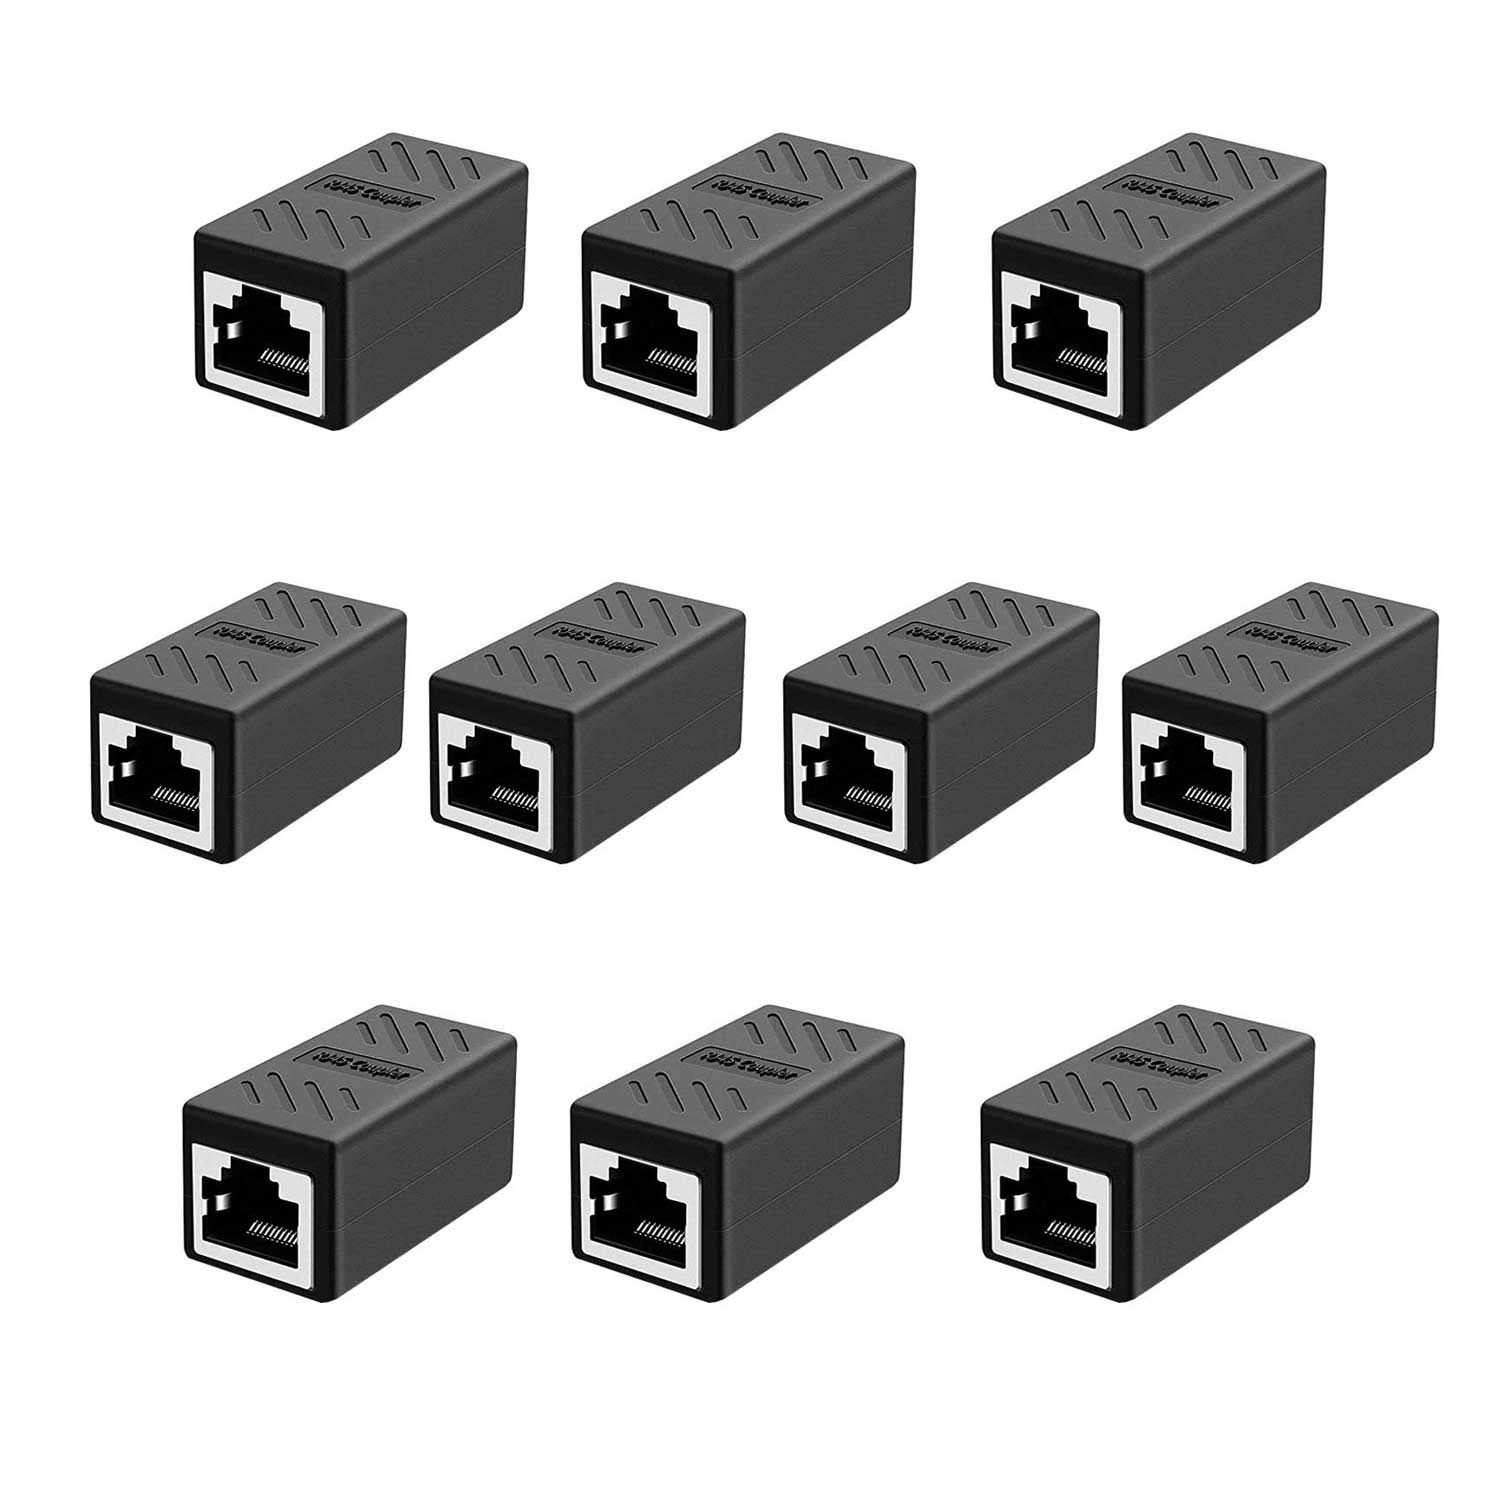 Smalloo RJ45 Coupler Cat8 Cat7 Cat6 Cat5e 1 to 1 LAN Ethernet Cable Extender Adapter Female to Female(10Pack): Industrial & Scientific